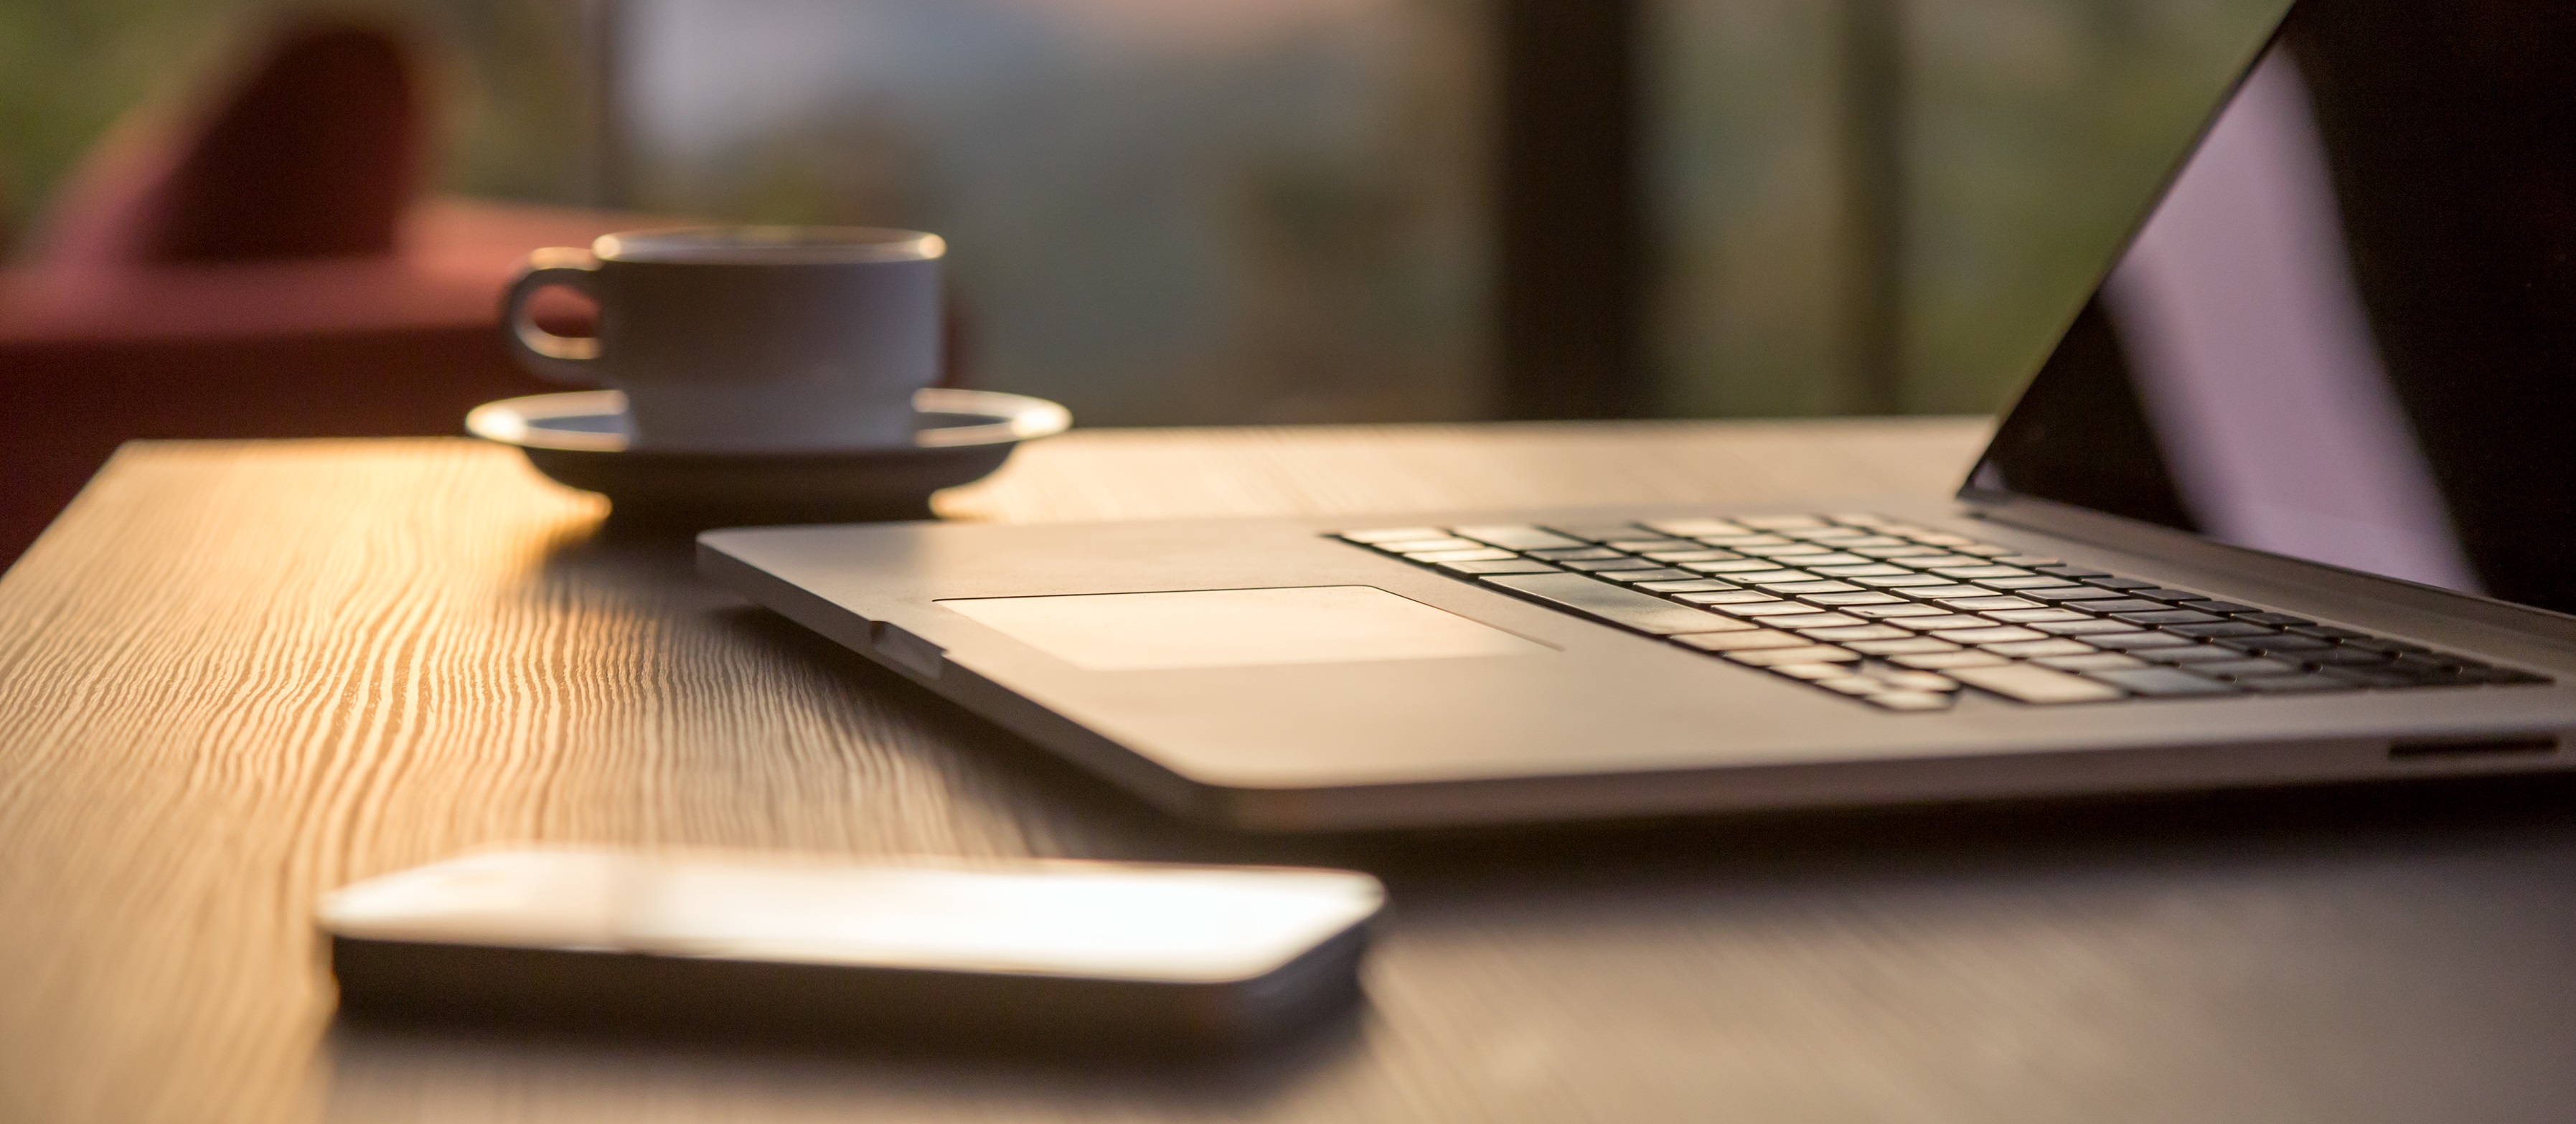 How to start a blog in 5 minutes